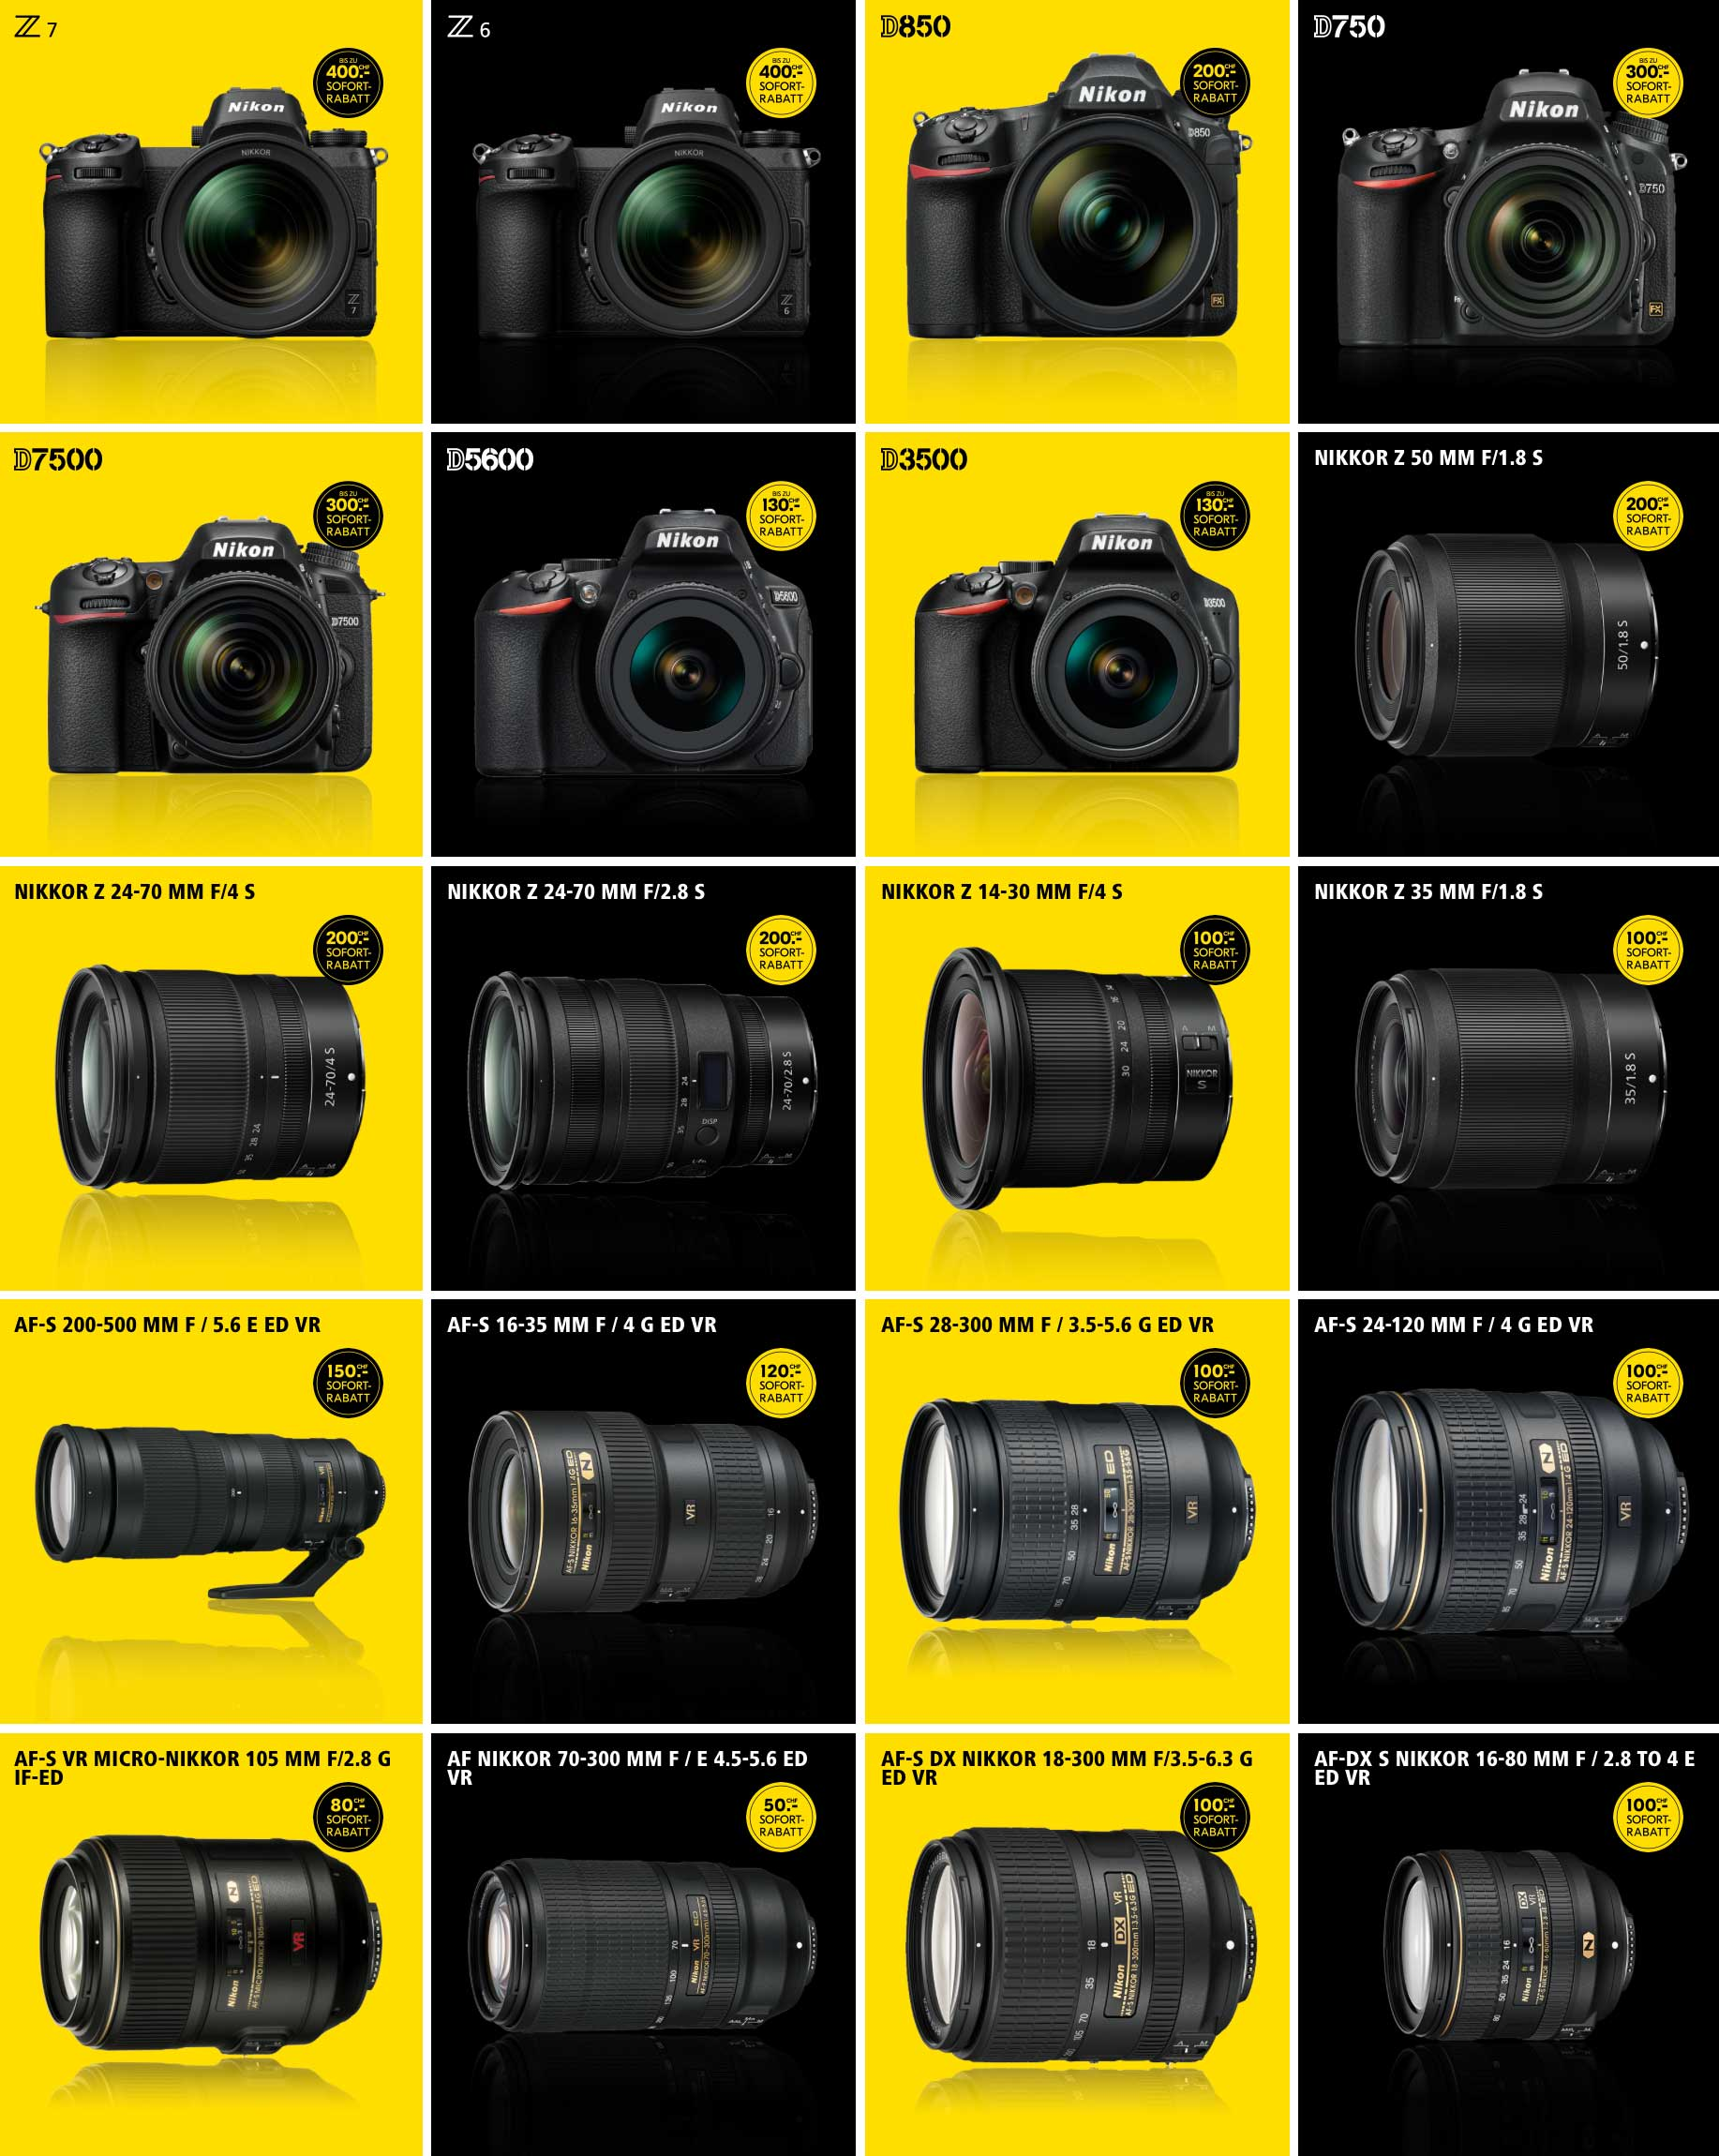 Nikon Summer Promotions coming in Europe on May 15th - Nikon